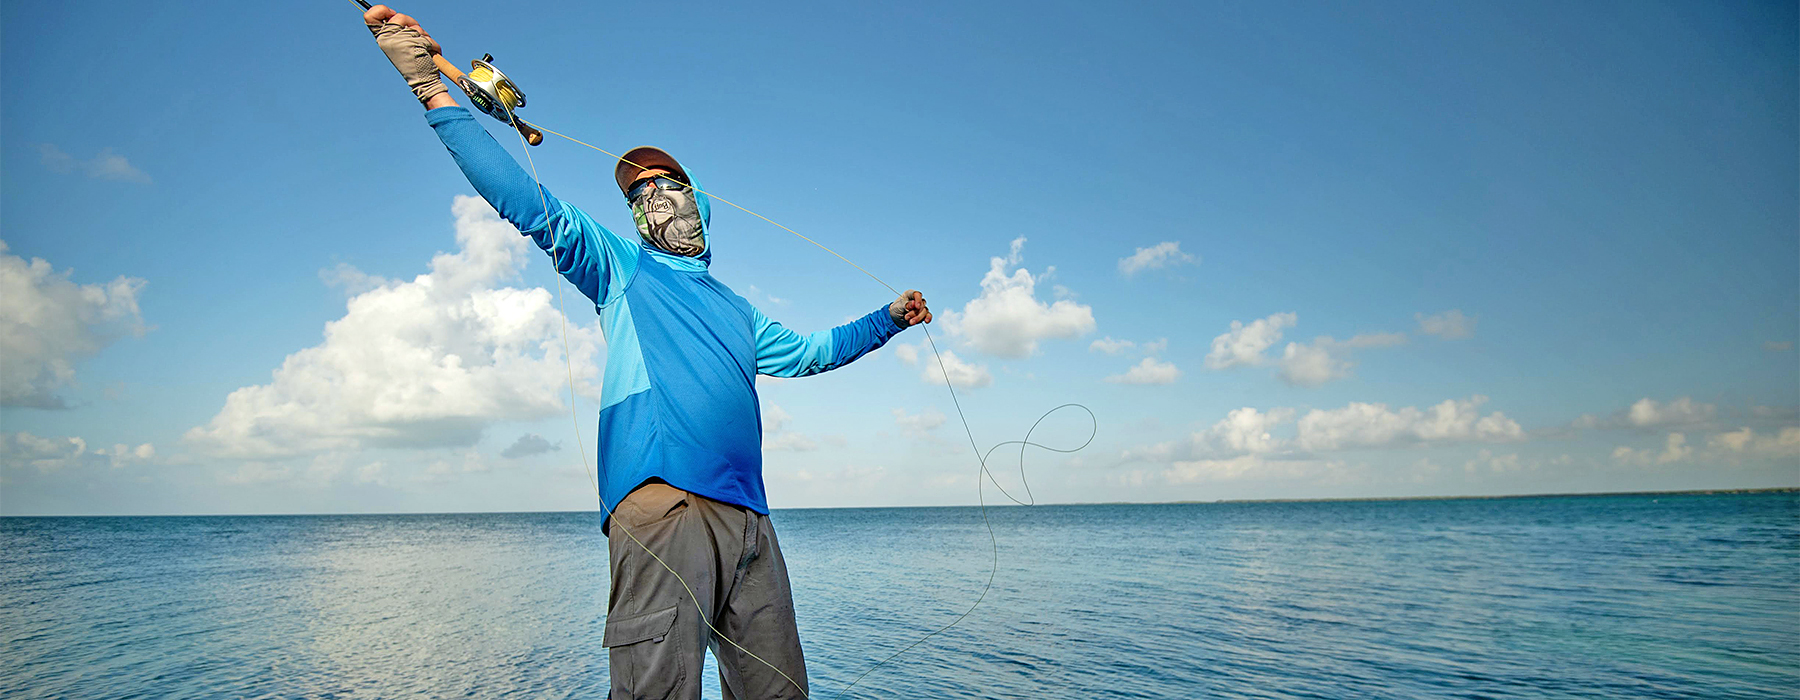 Run From the Sun - Ways to Protect Yourself While Fly Fishing